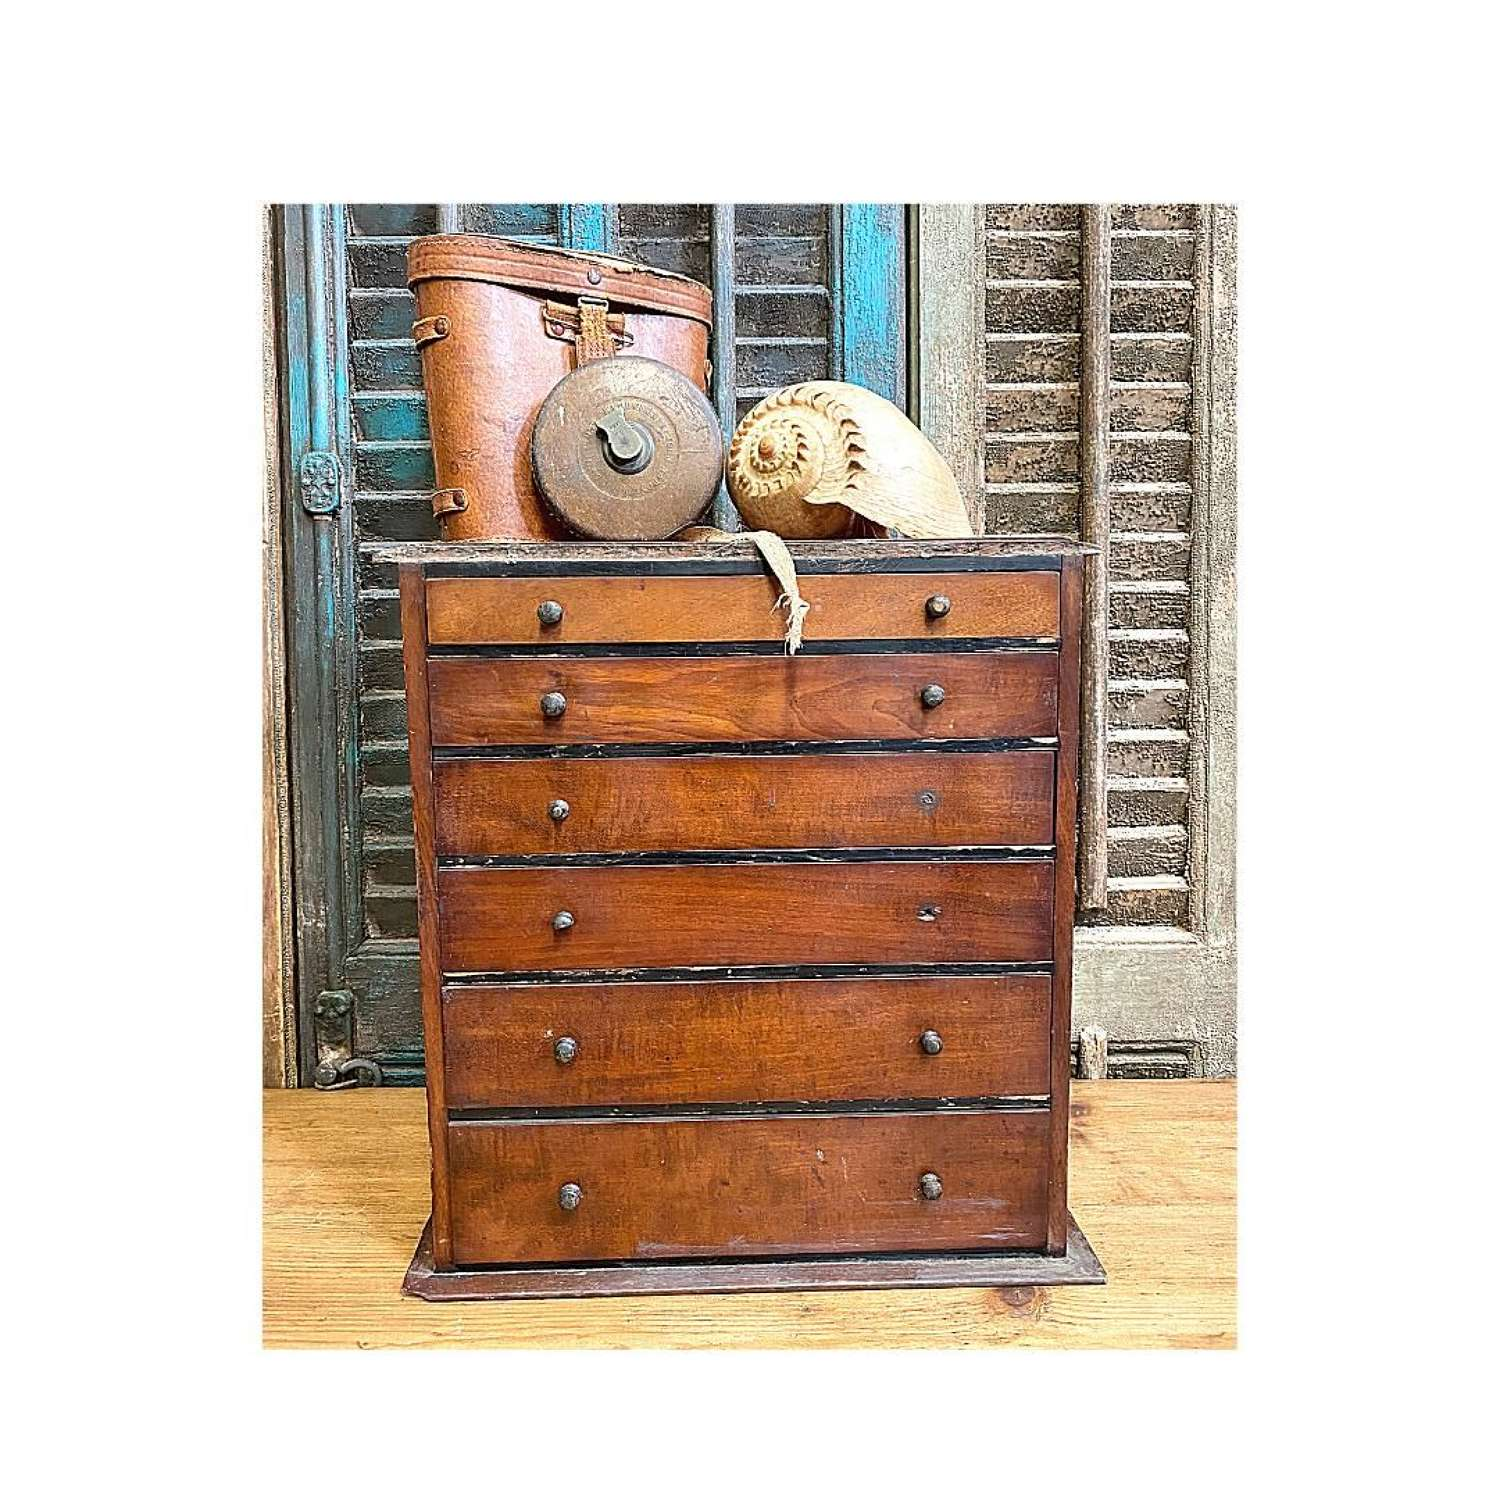 19th century 6 drawer collectors chest